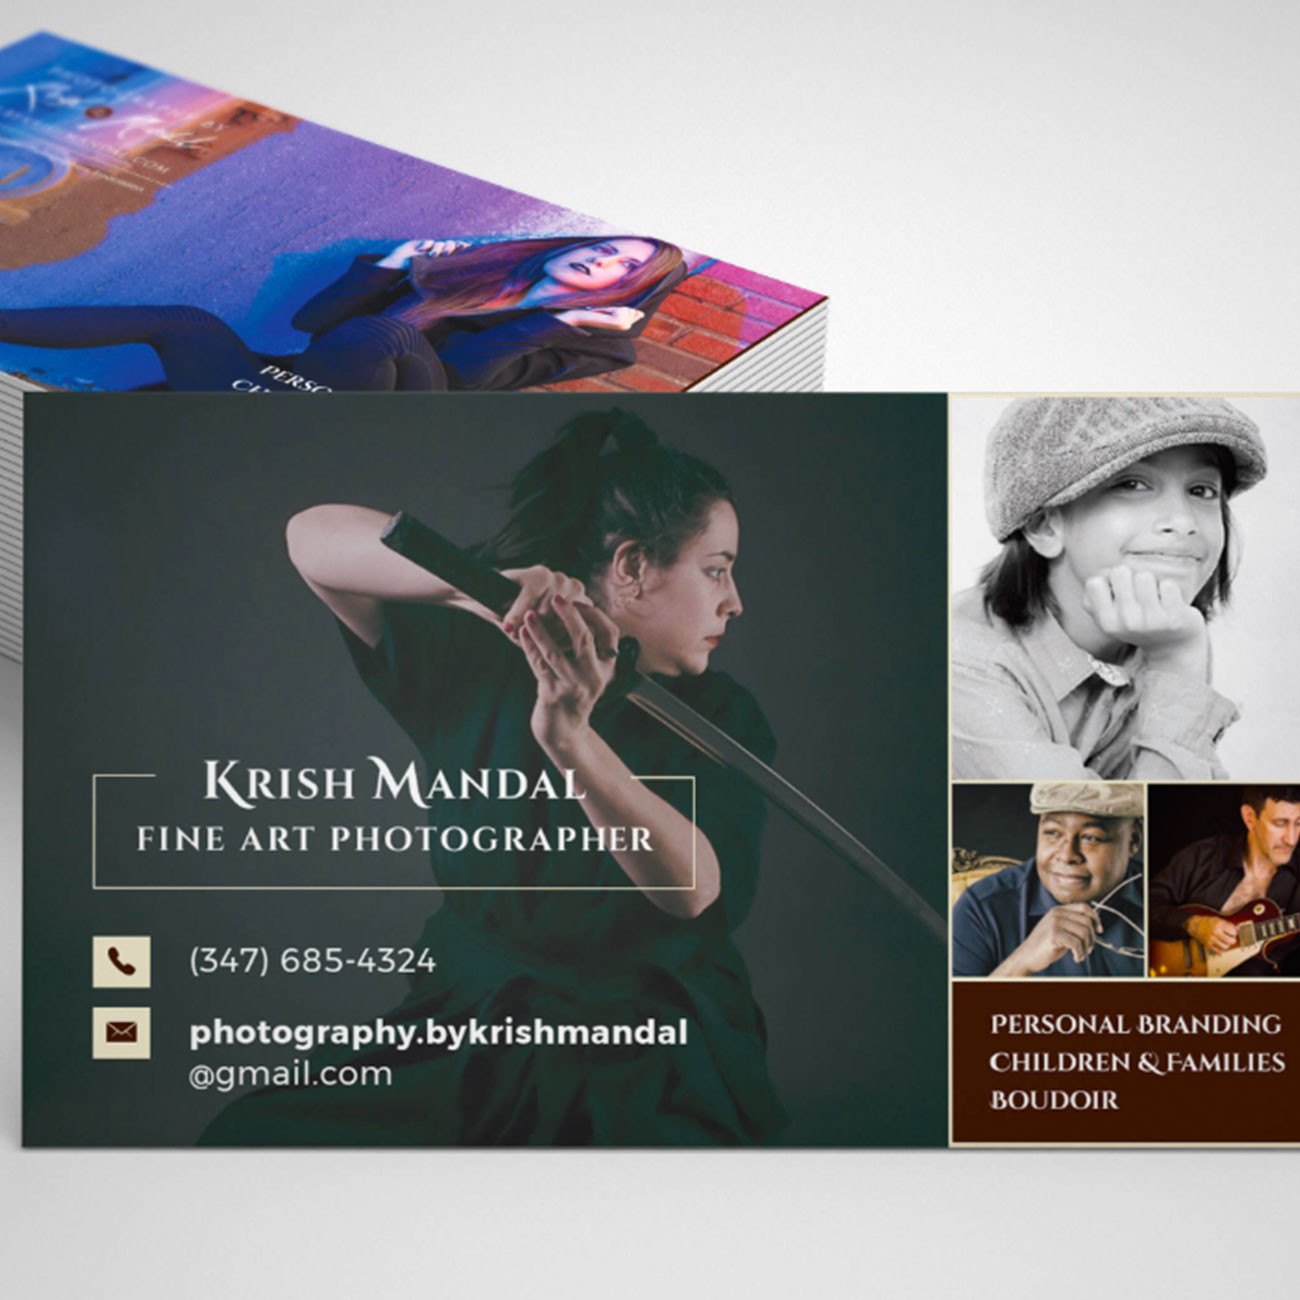 Image of Krish Mandal Business Card